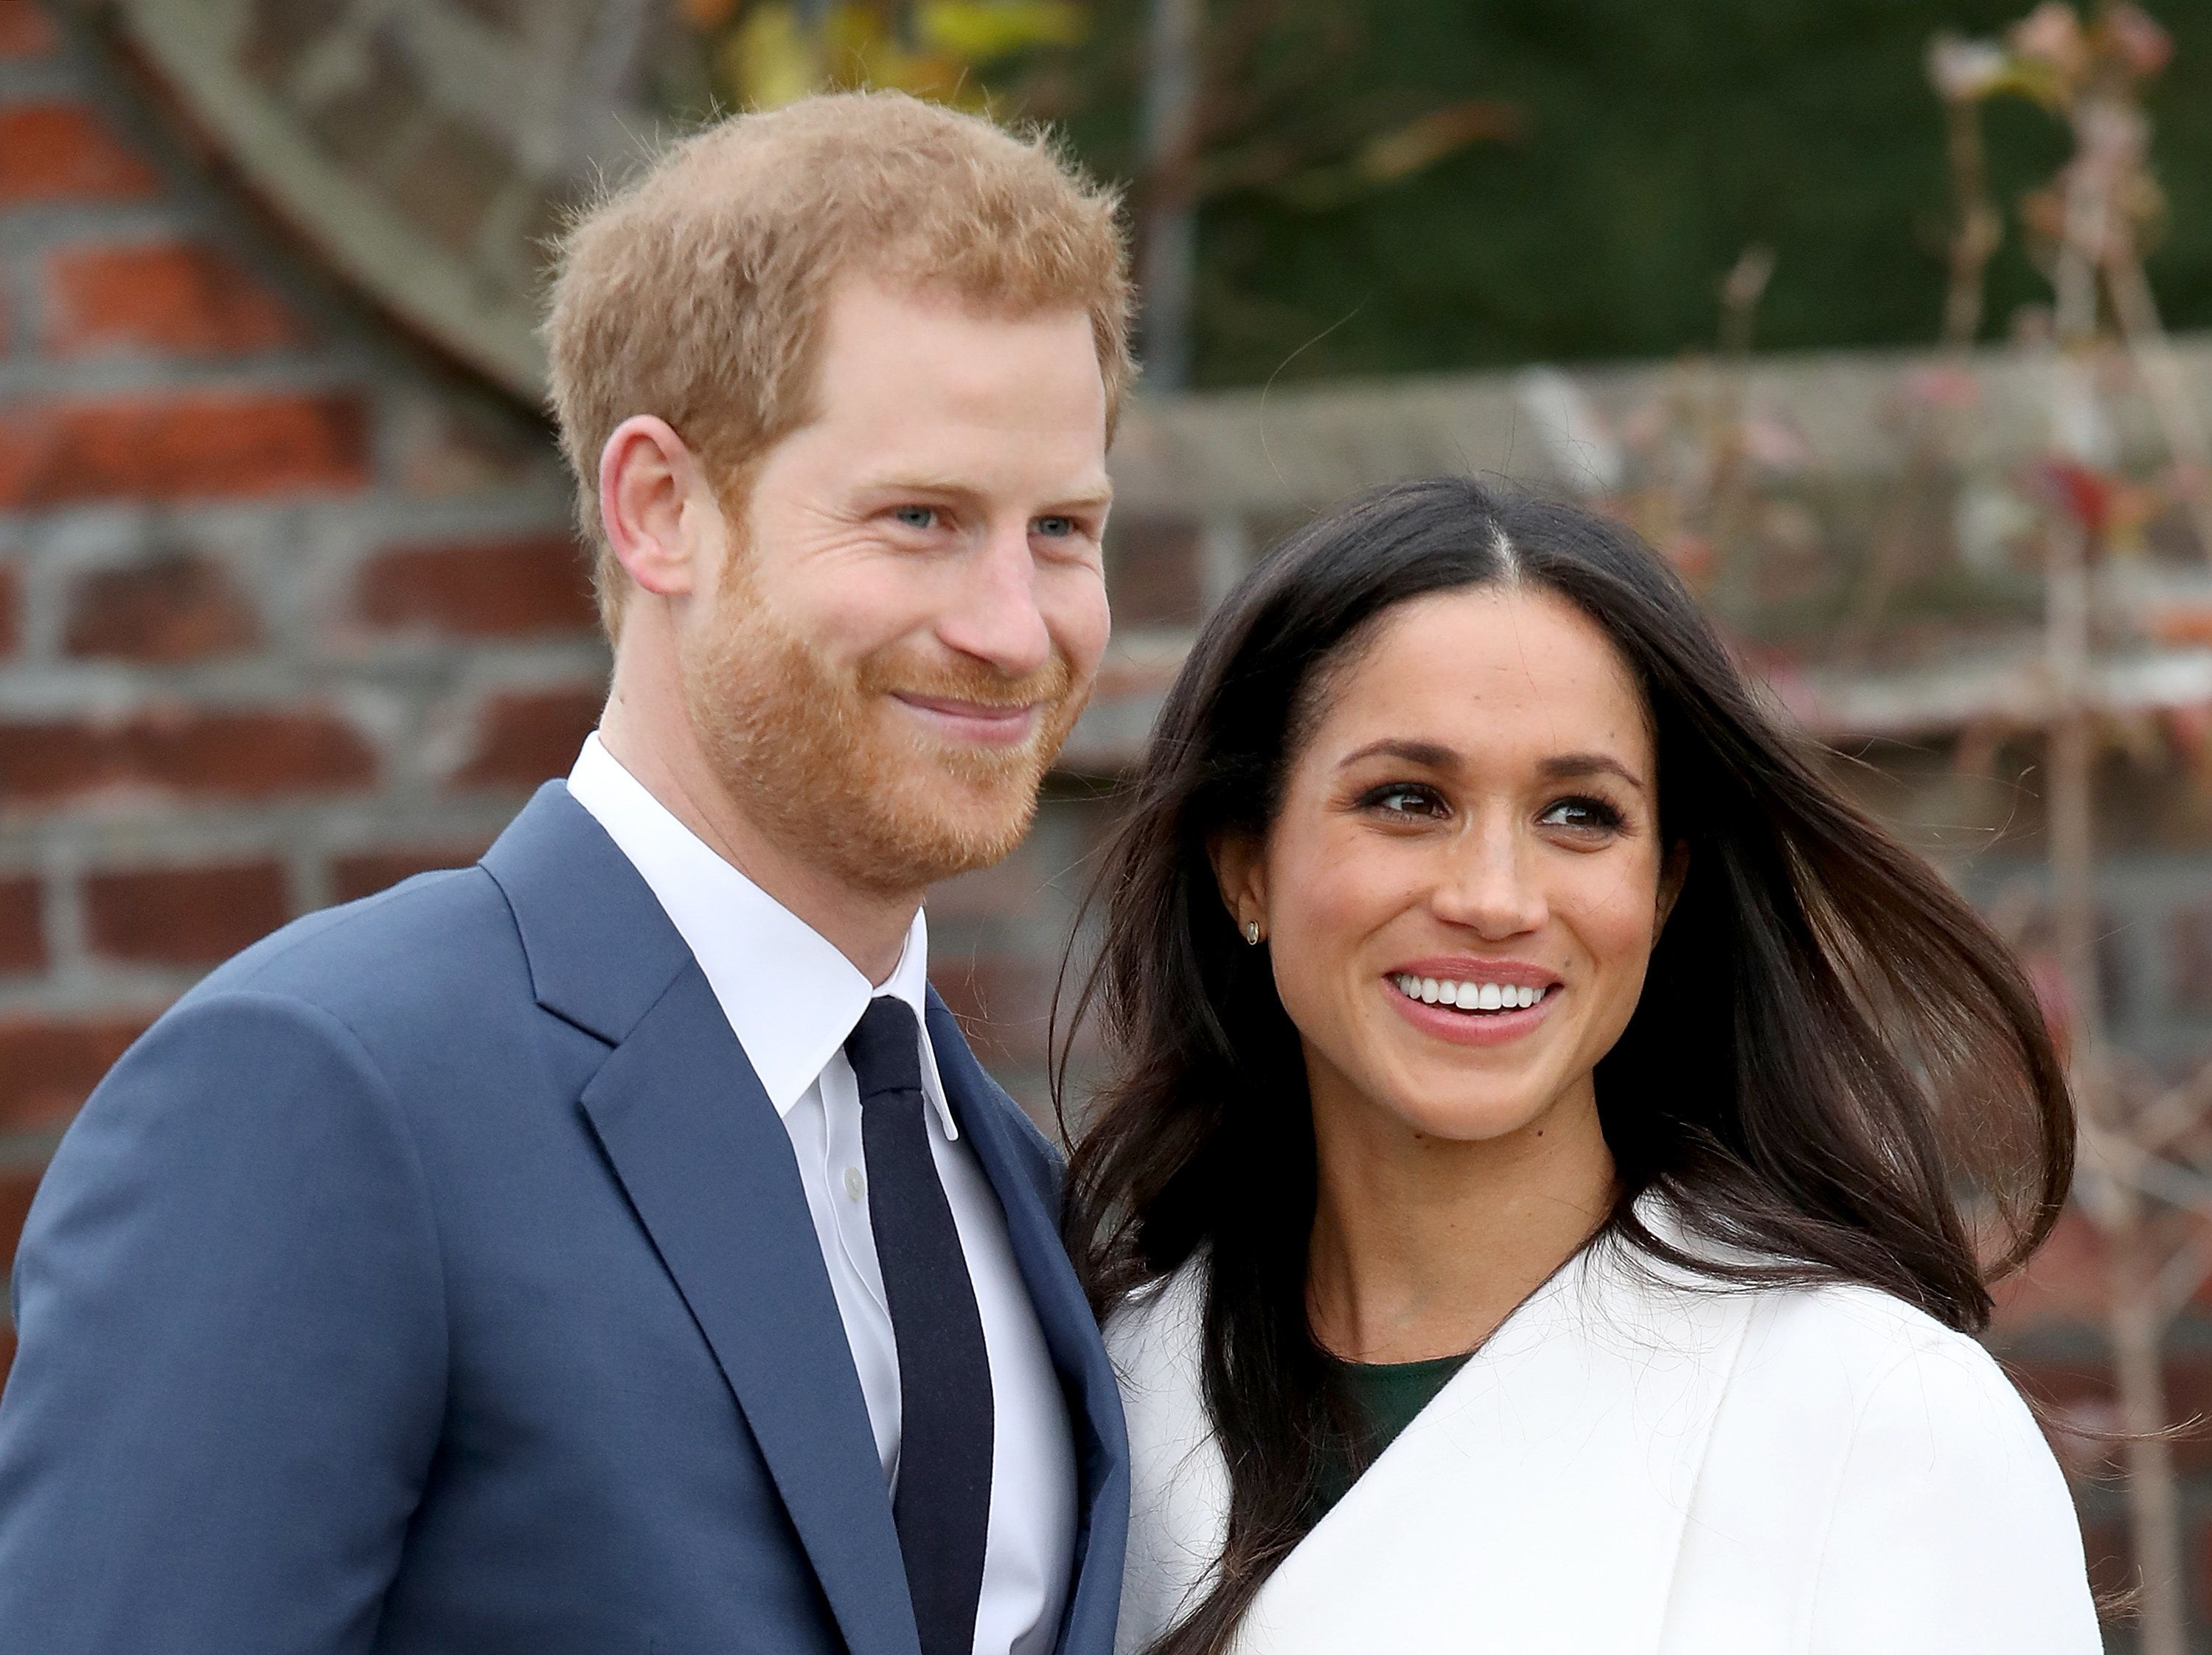 Why Meghan Markle's Engagement To Prince Harry Is